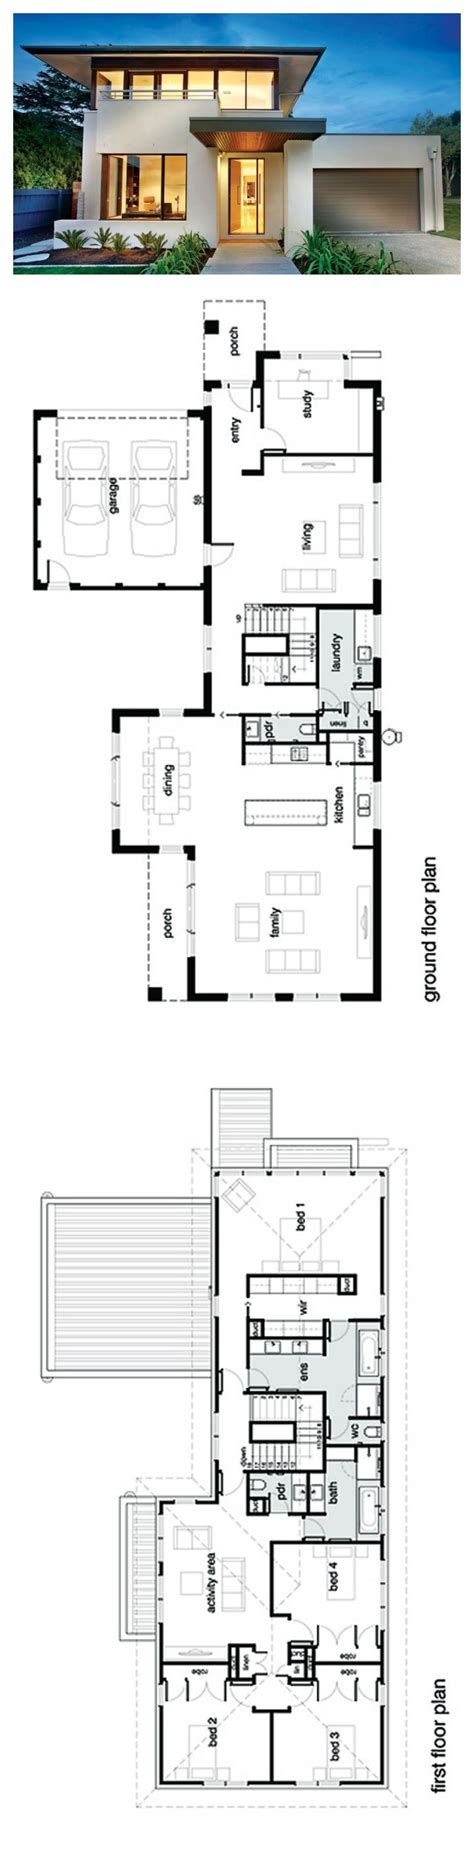 floor plan modern family house the 25 best ideas about modern house plans on pinterest